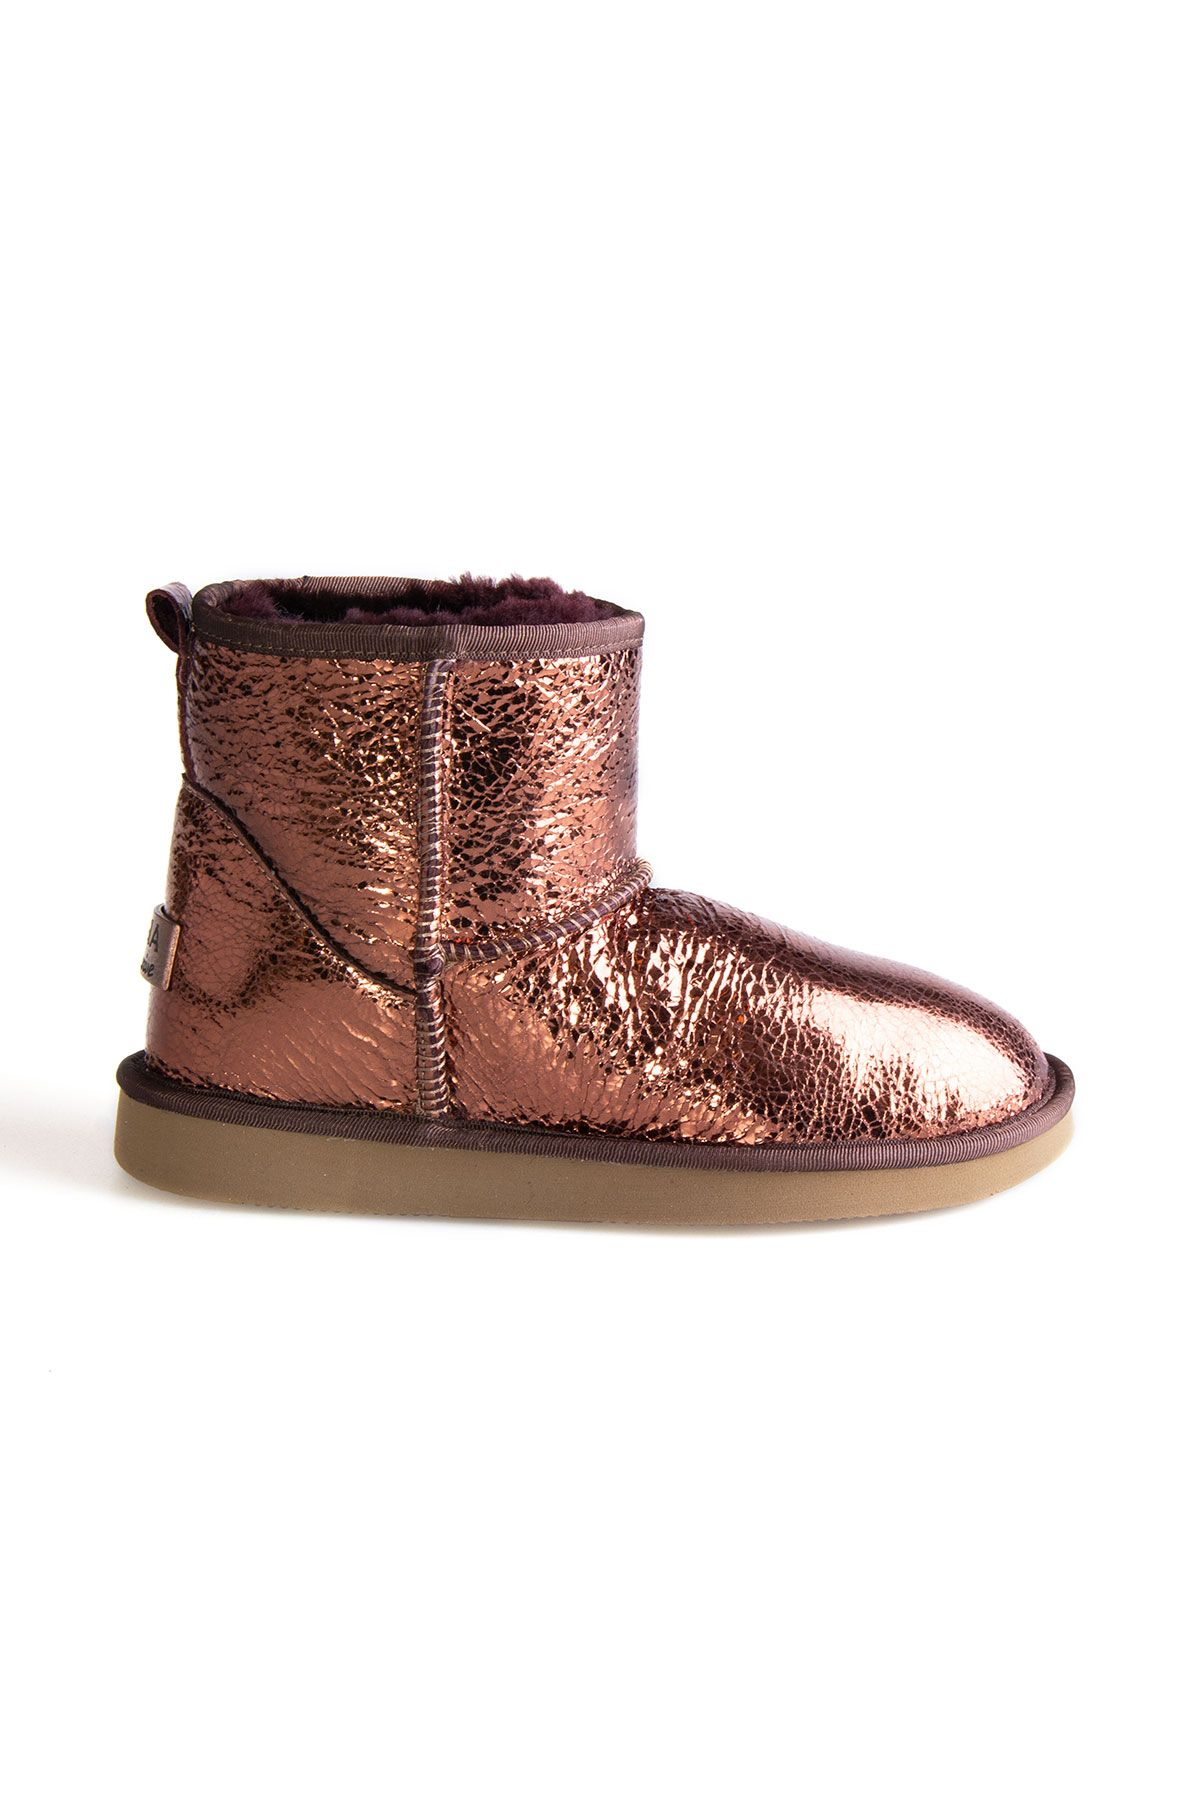 Pegia Shearling Women's Boots With A Pattern 191027 Bronze